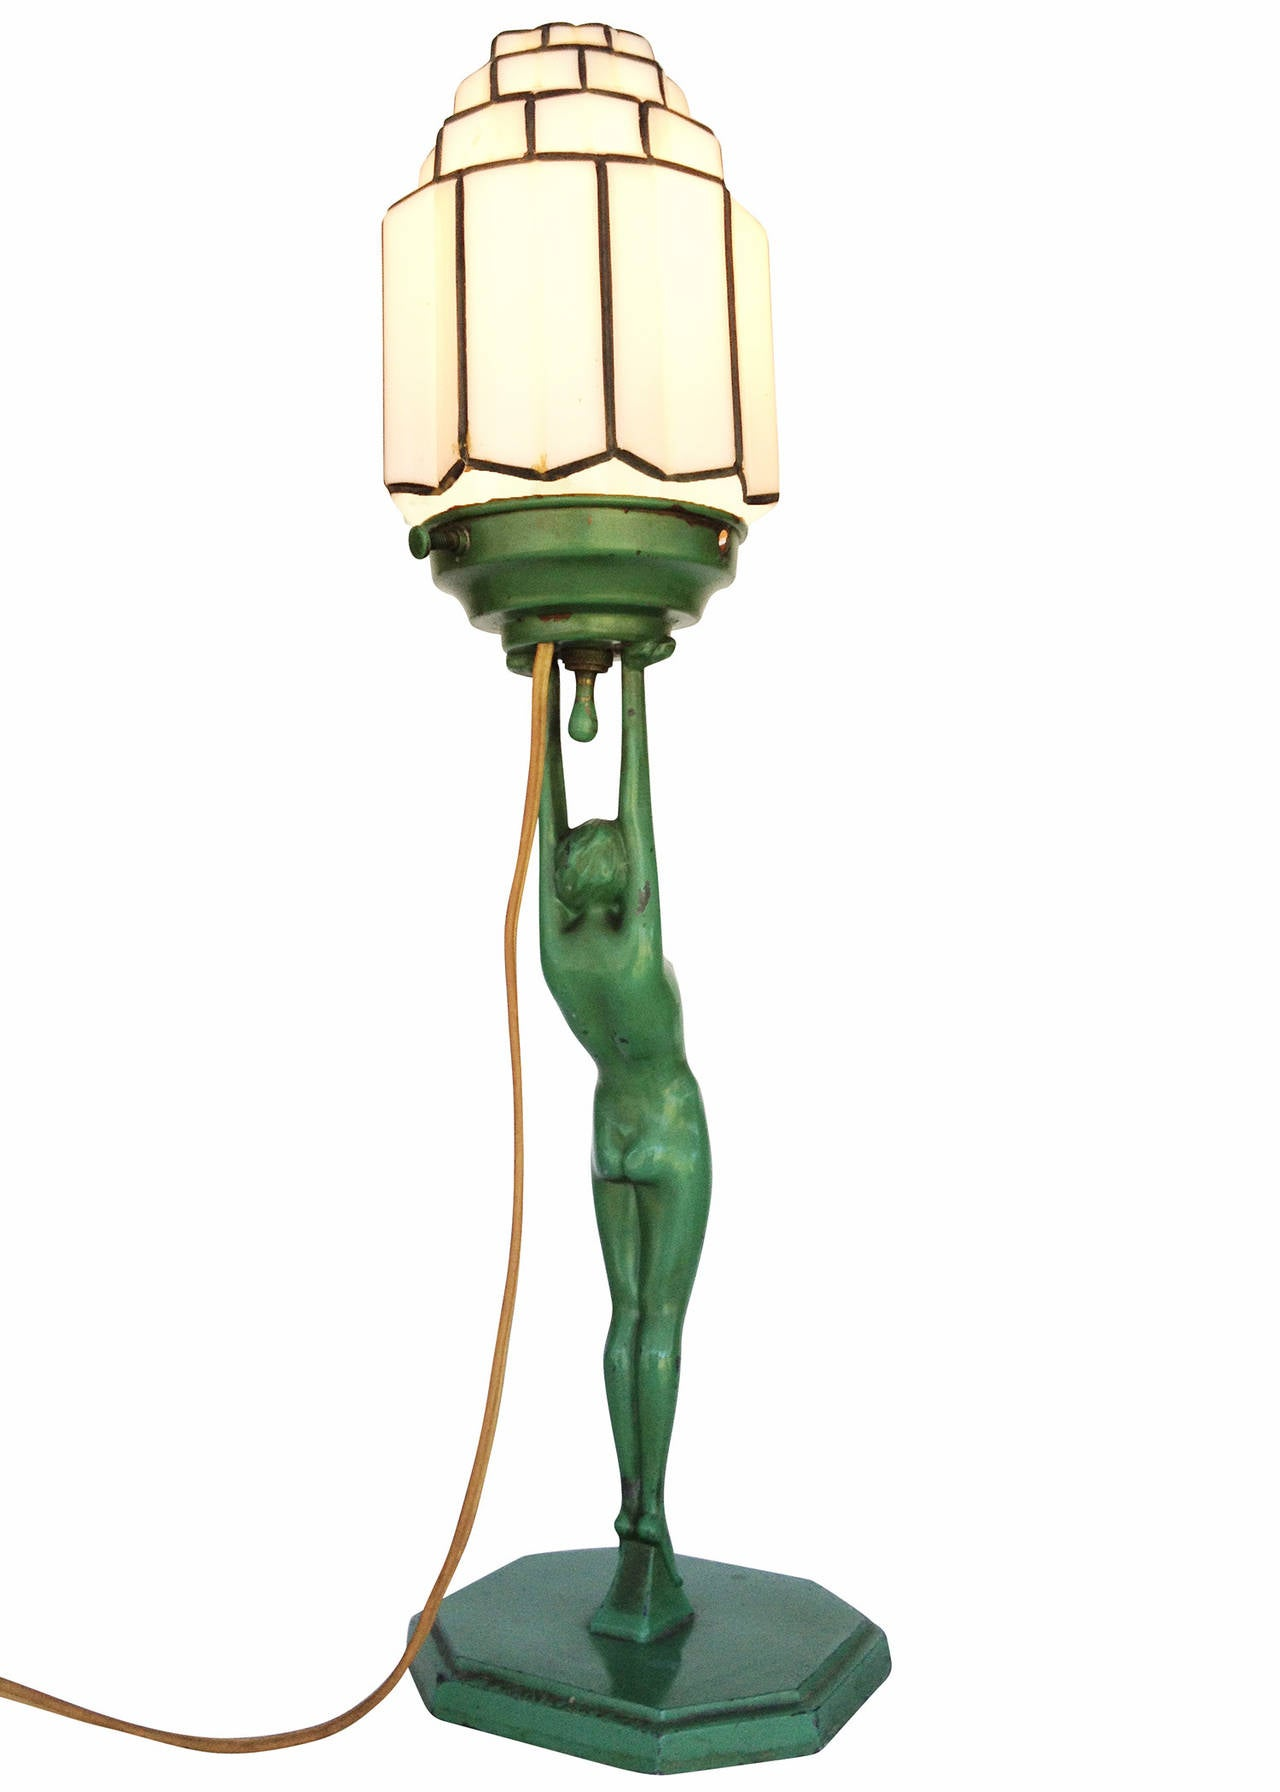 Frankart L210 Nude Sculptural Table Lamp with Stepped ...